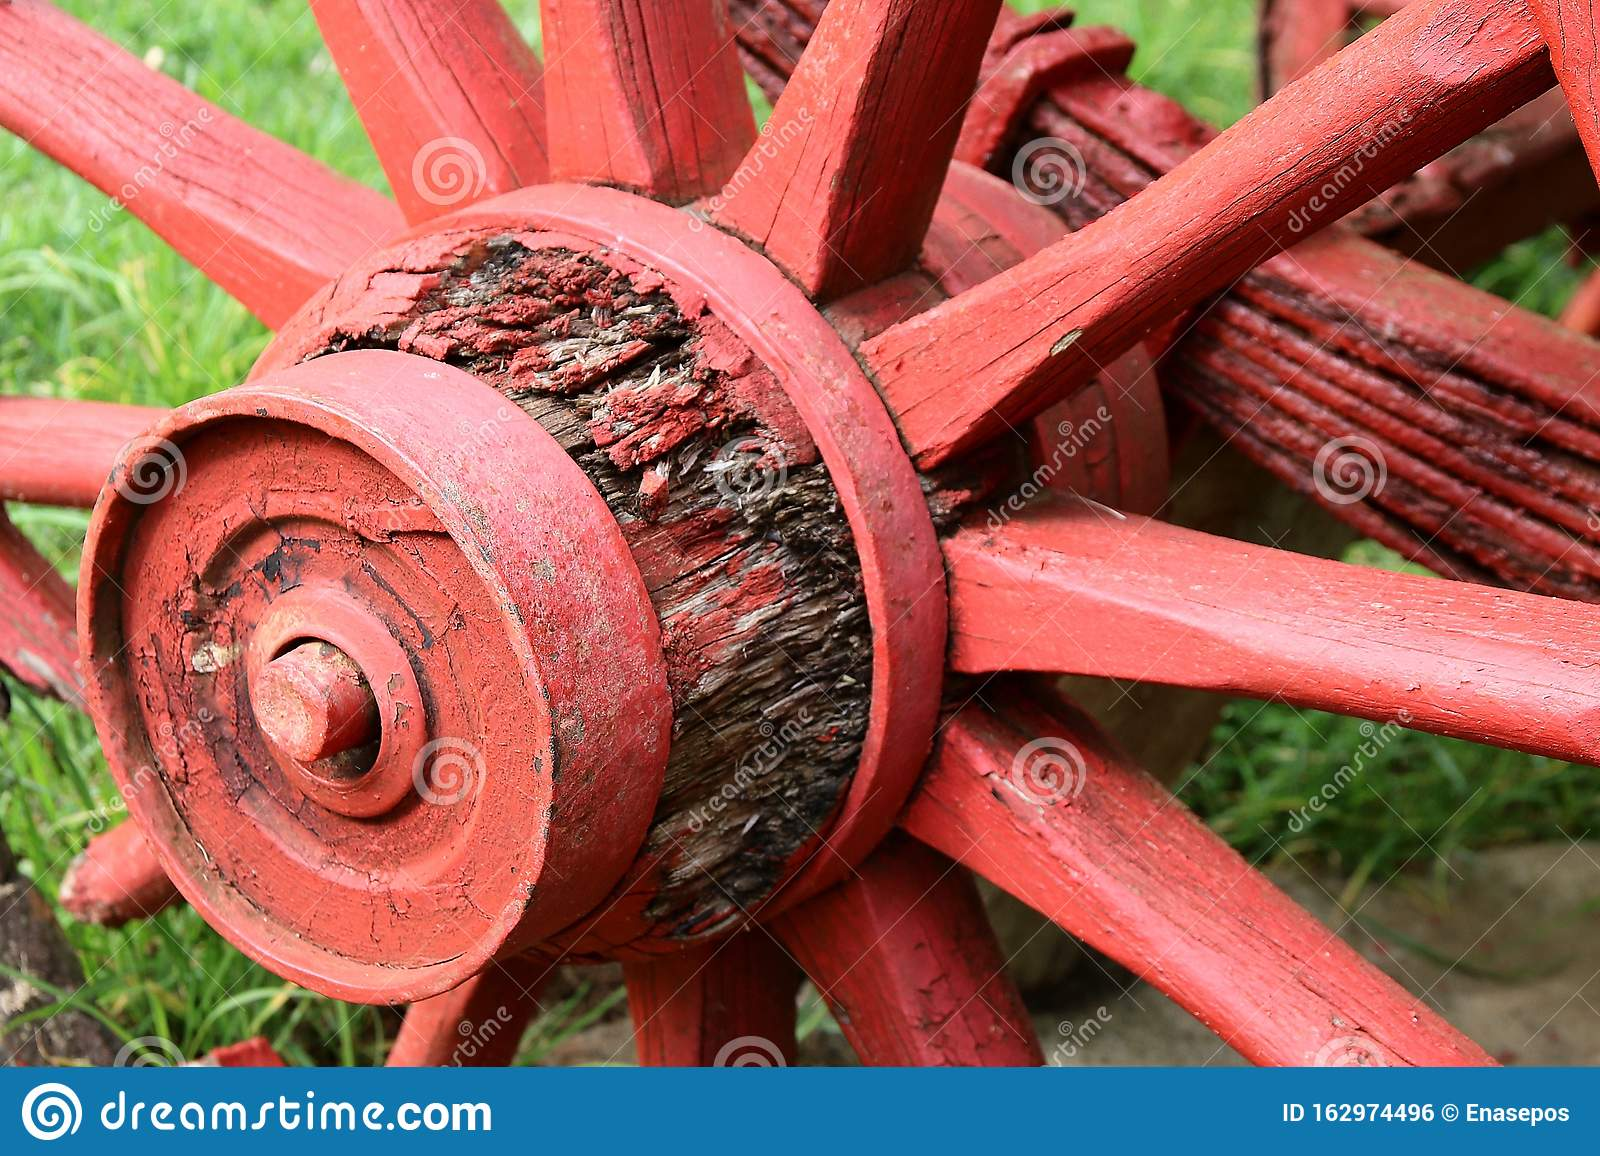 205 Old Painted Wagon Wheel Photos Free Royalty Free Stock Photos From Dreamstime